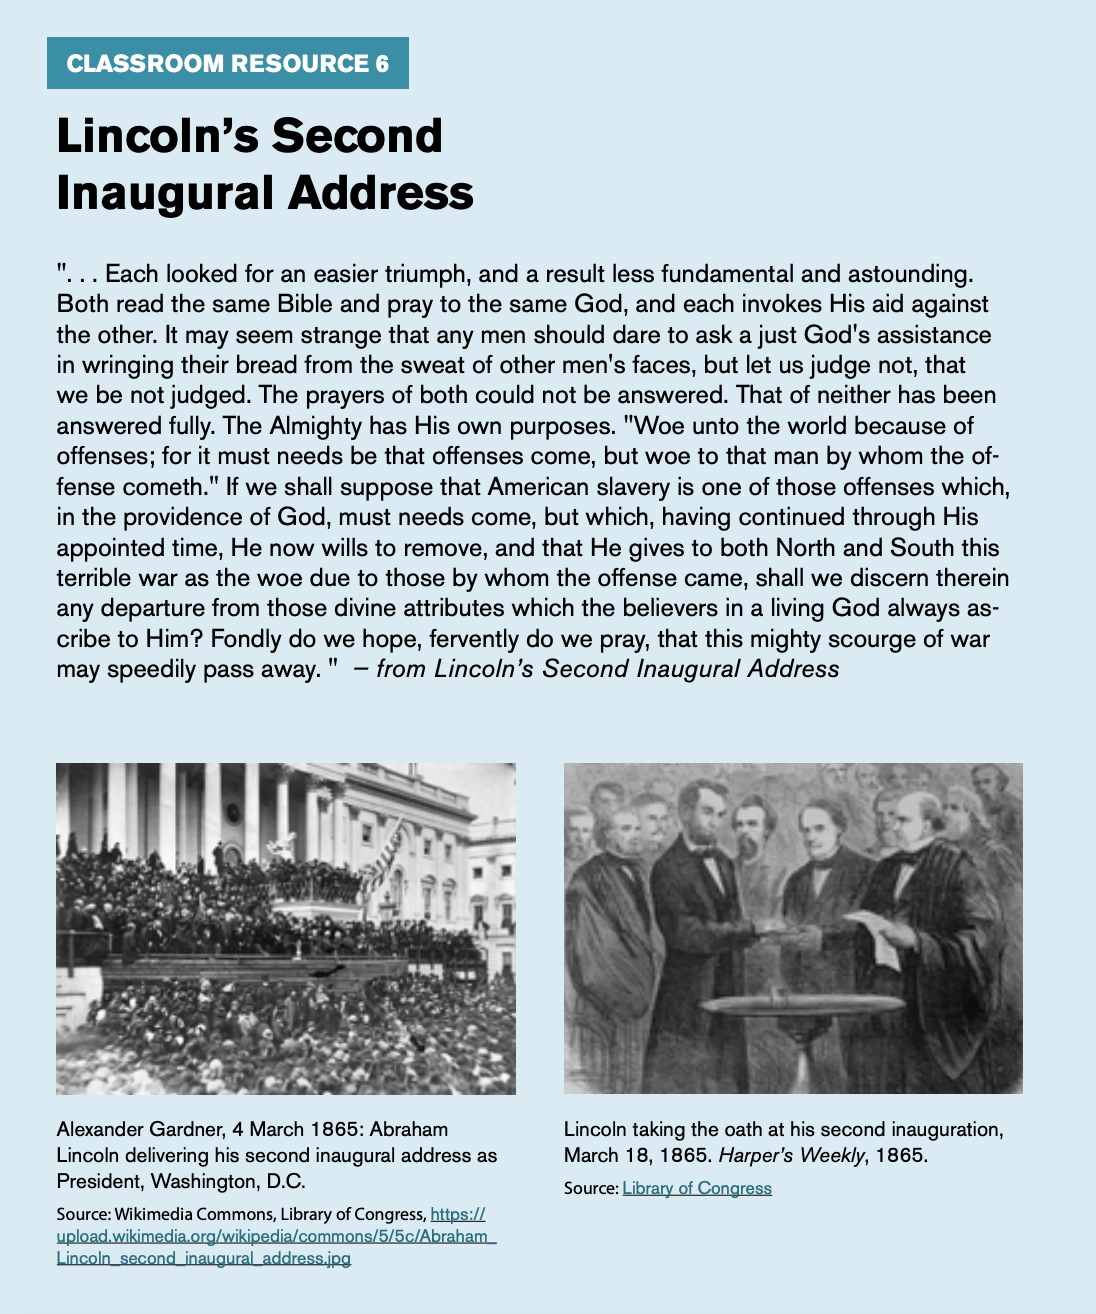 "Classroom resource 6, titled ""Lincoln's Second Inaugural Address,"" includes an image of Abraham Lincoln delivering his second inaugural address as president and Lincoln taking the oath at his second inauguration."